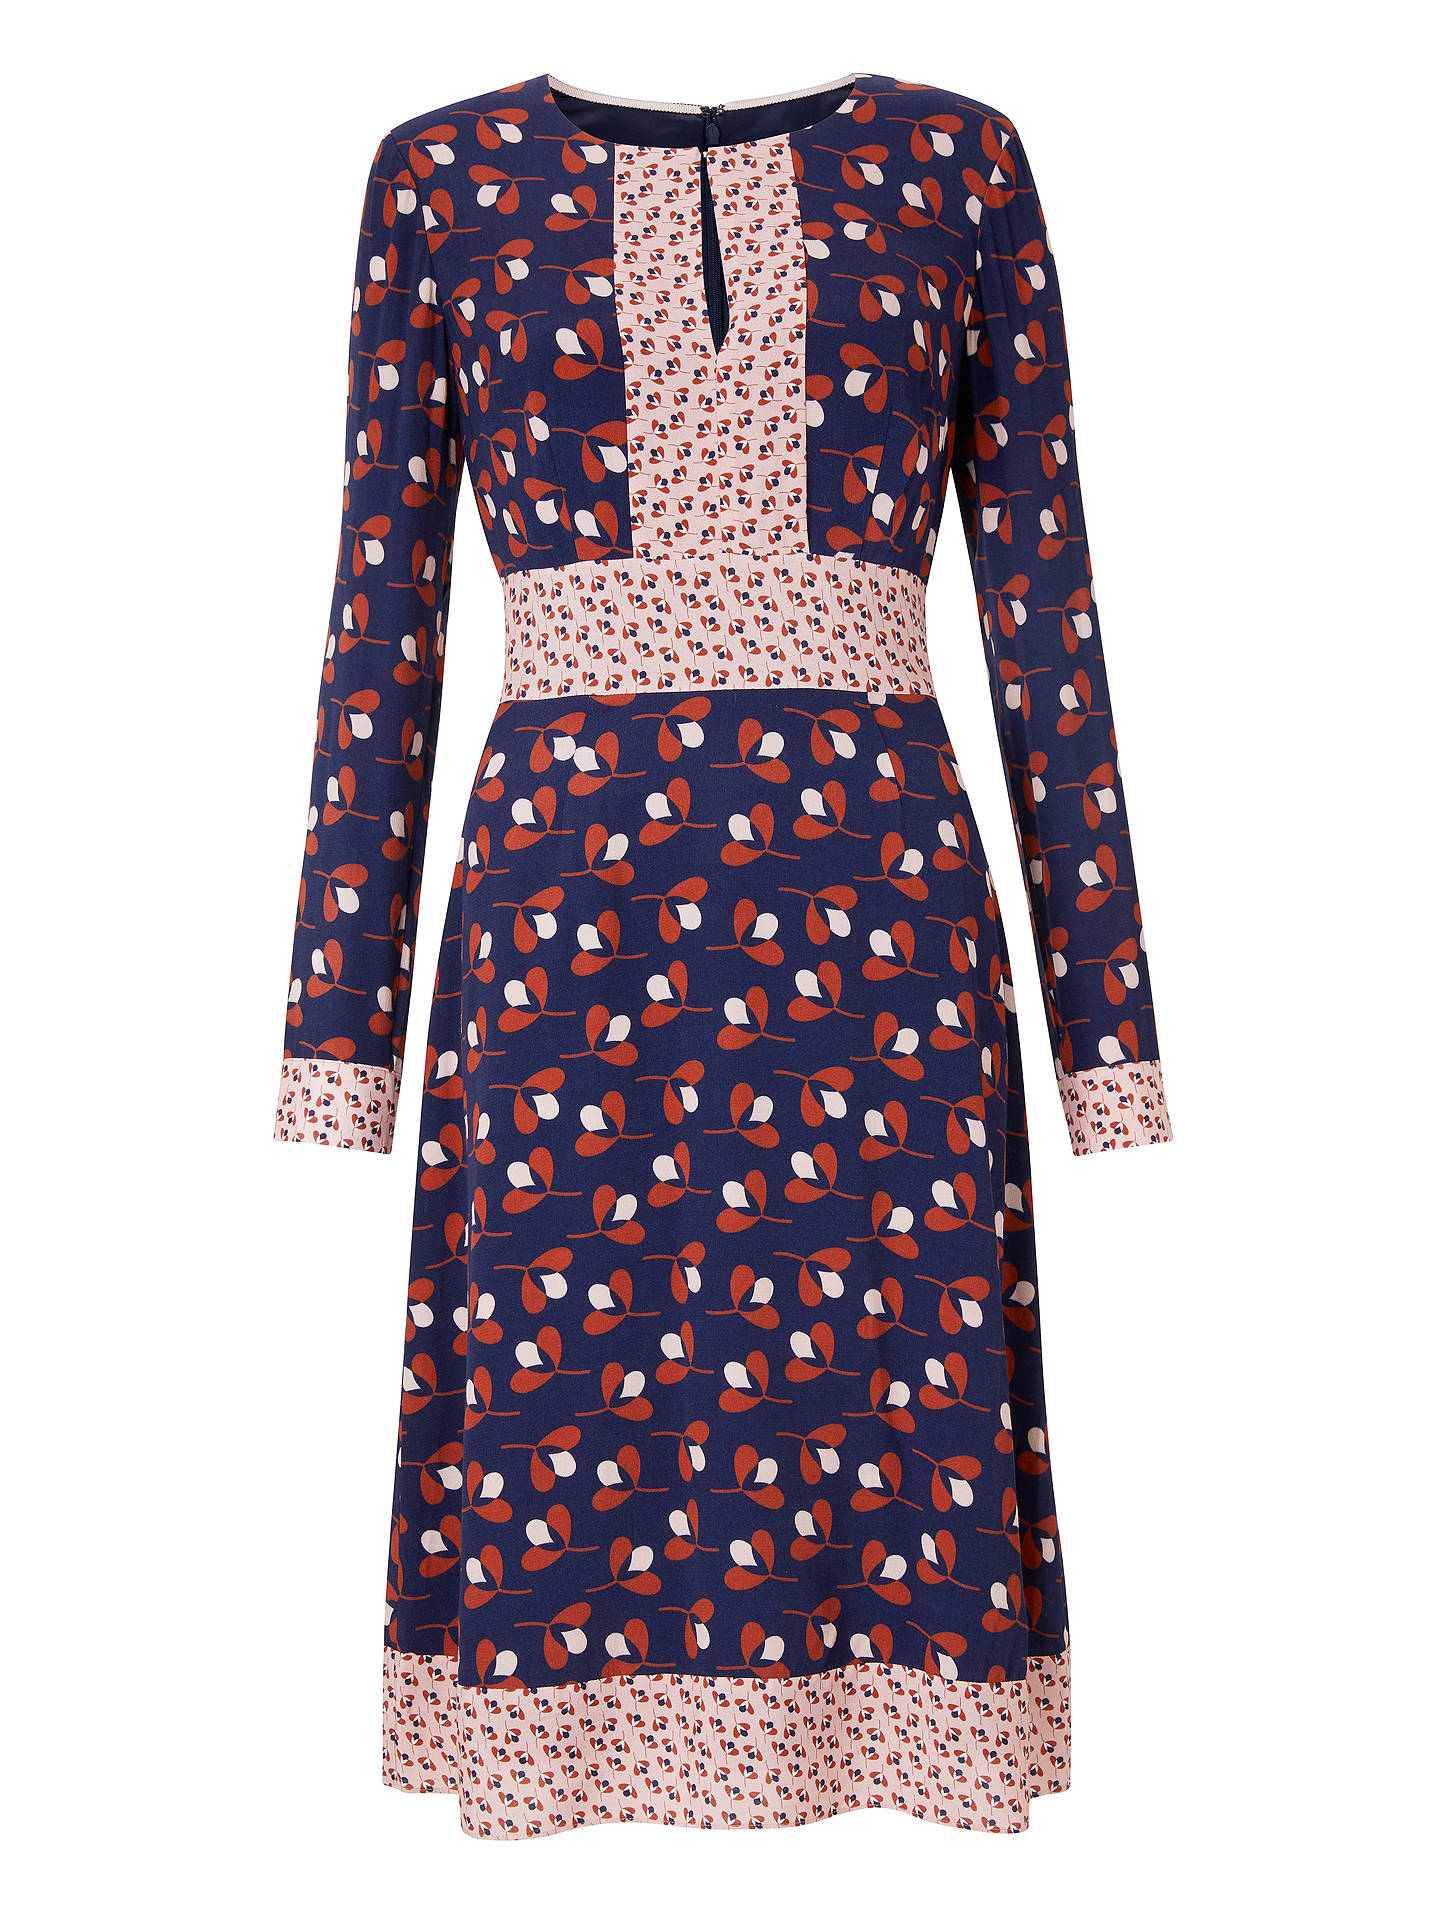 BuyBoden Daisy Conker Dress, Navy/Red, 10 Online at johnlewis.com